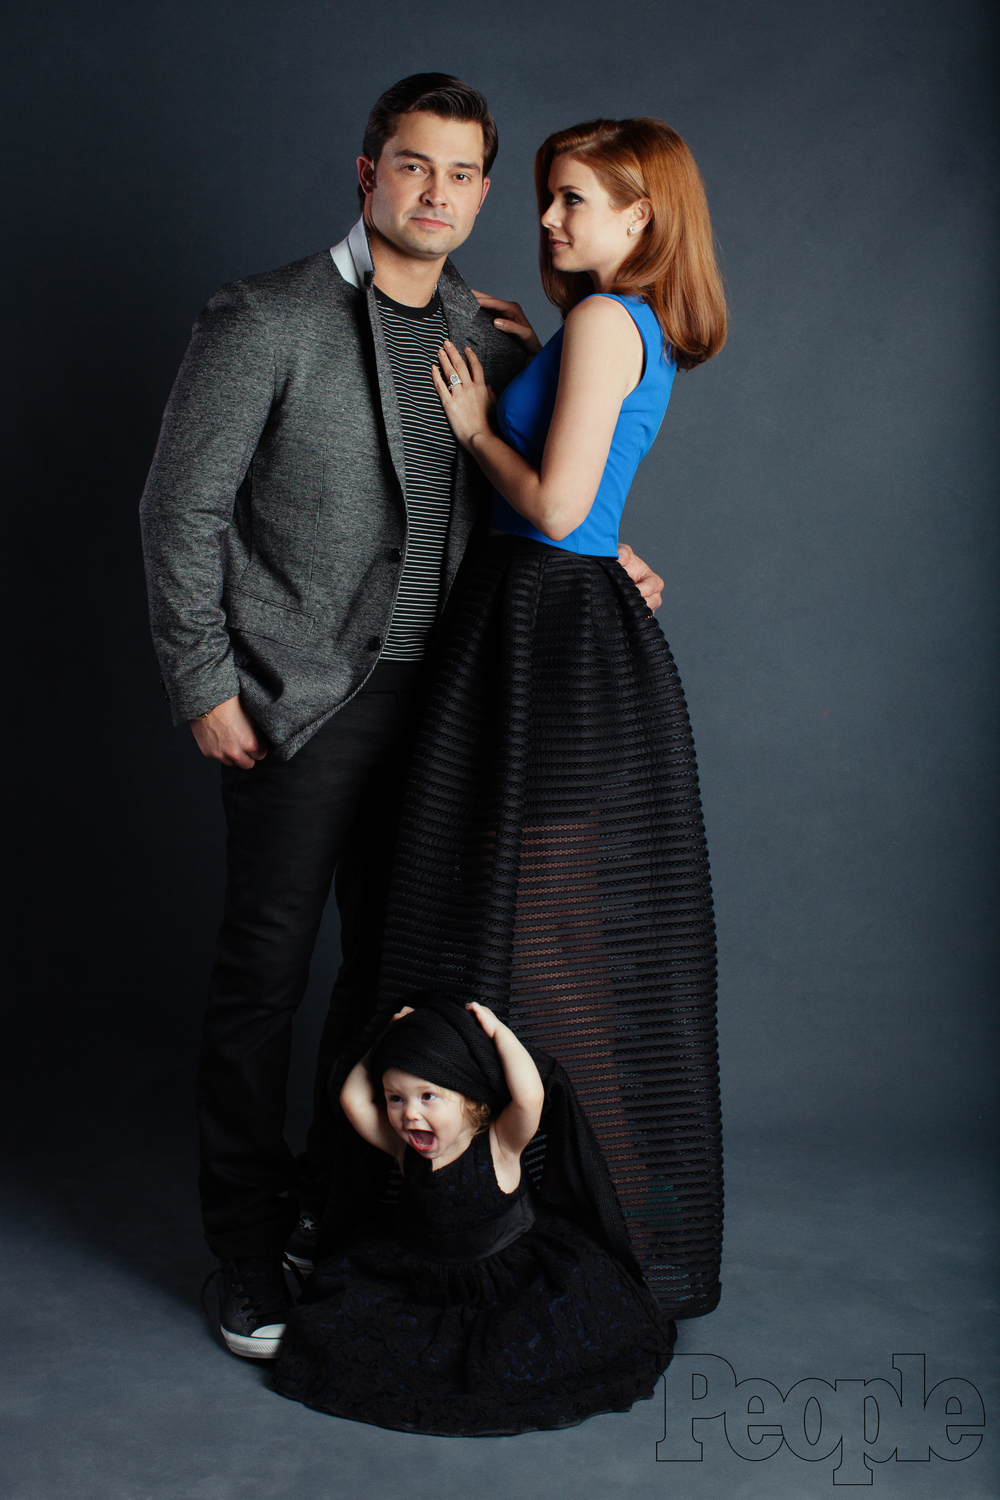 PEOPLE-joanna-garcia-nick-swisher-family-photo-shoot-people-magazine-editorial-2.jpg